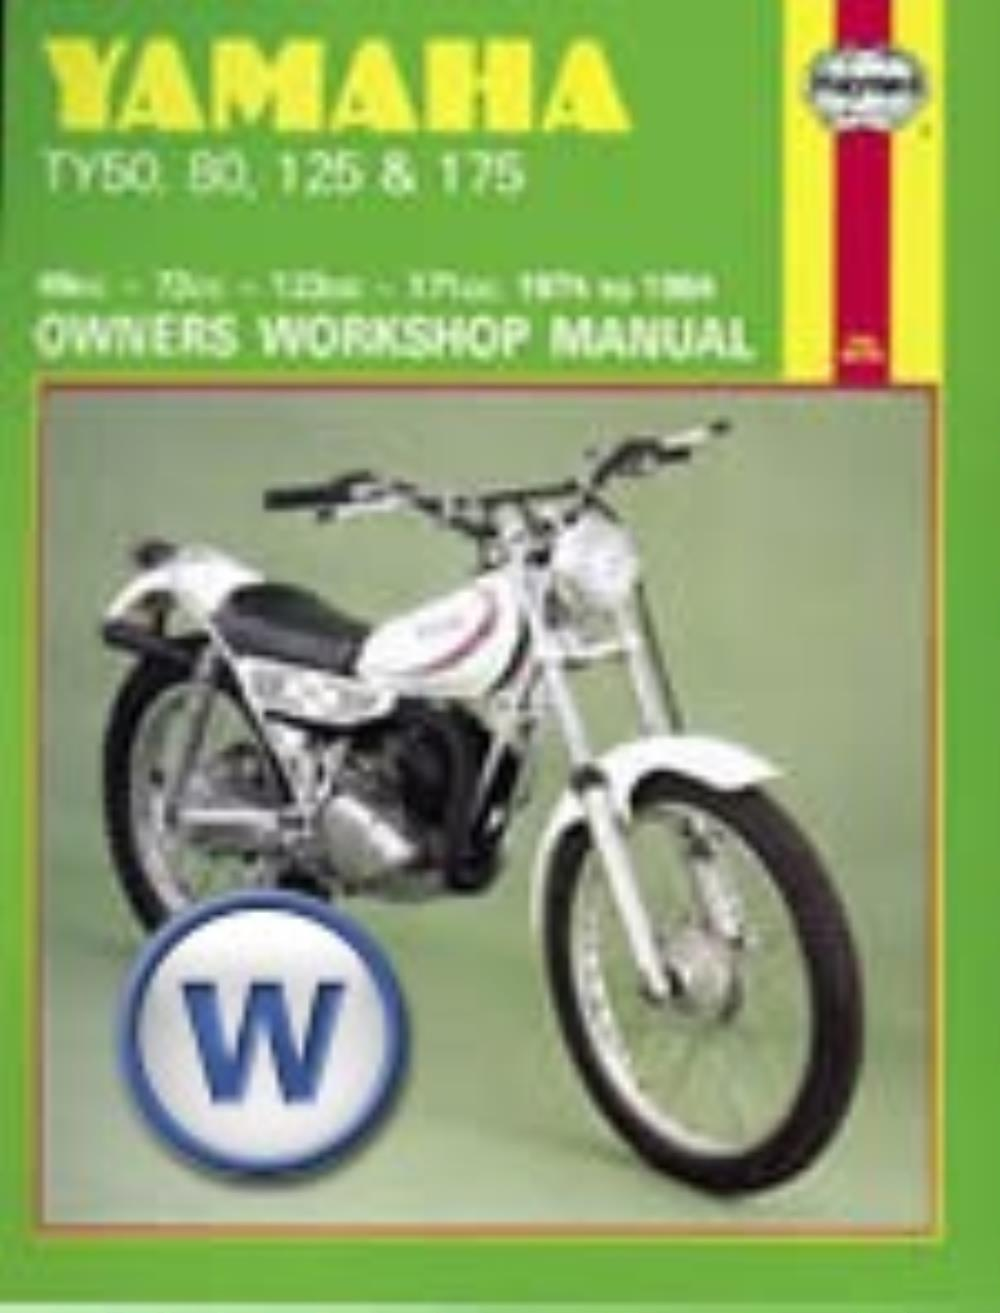 Manual Haynes for 1984 Yamaha TY 80